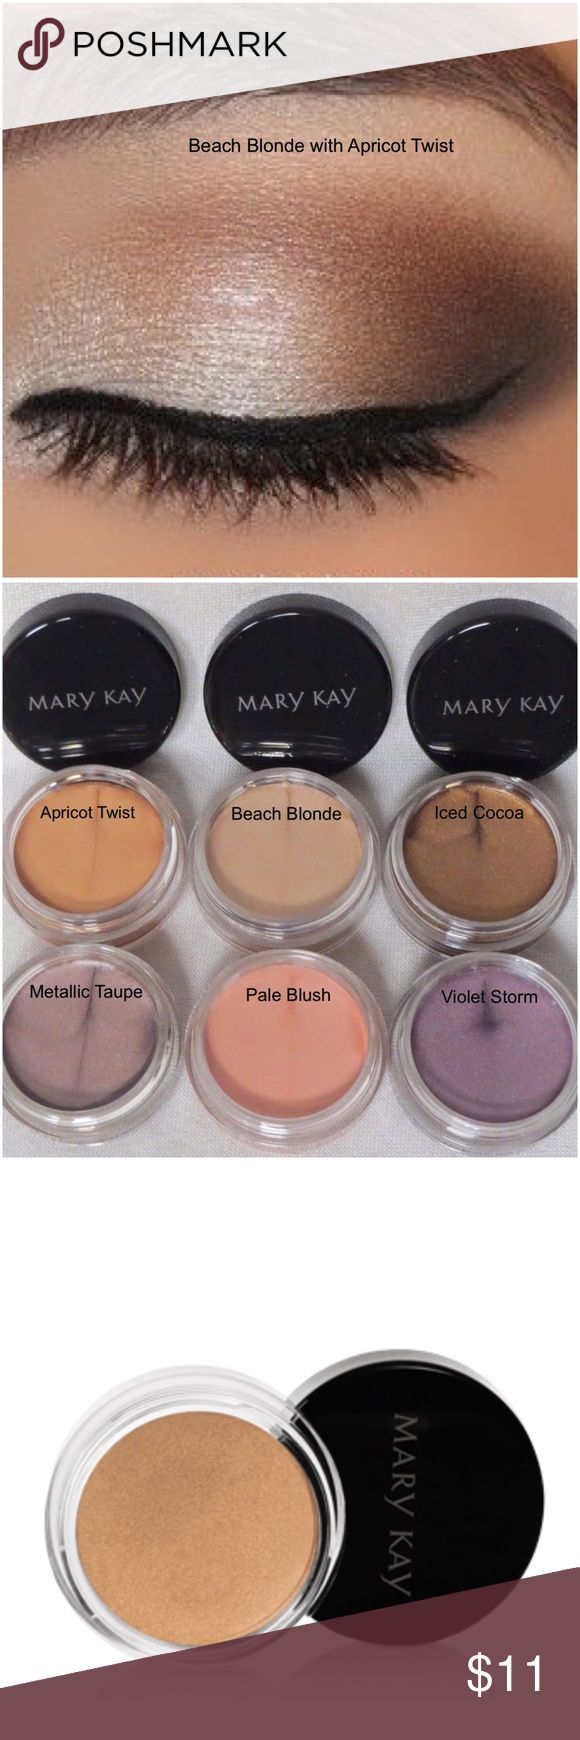 Mary Kay Cream Eye Color This soft, creamy, long-wearing formula glides on easily, lasts for 10 hours and can be applied in multiple layers to deliver more noticeable color while retaining a lightweight feel. It can be used alone or as a primer under mineral eye color, dries quickly and does not transfer, oil- and fragrance-free, clinically tested for skin irritancy and allergy, suitable for sensitive skin and eyes, and ophthalmologist-tested and suitable for contact lens wearers. Mary Kay…